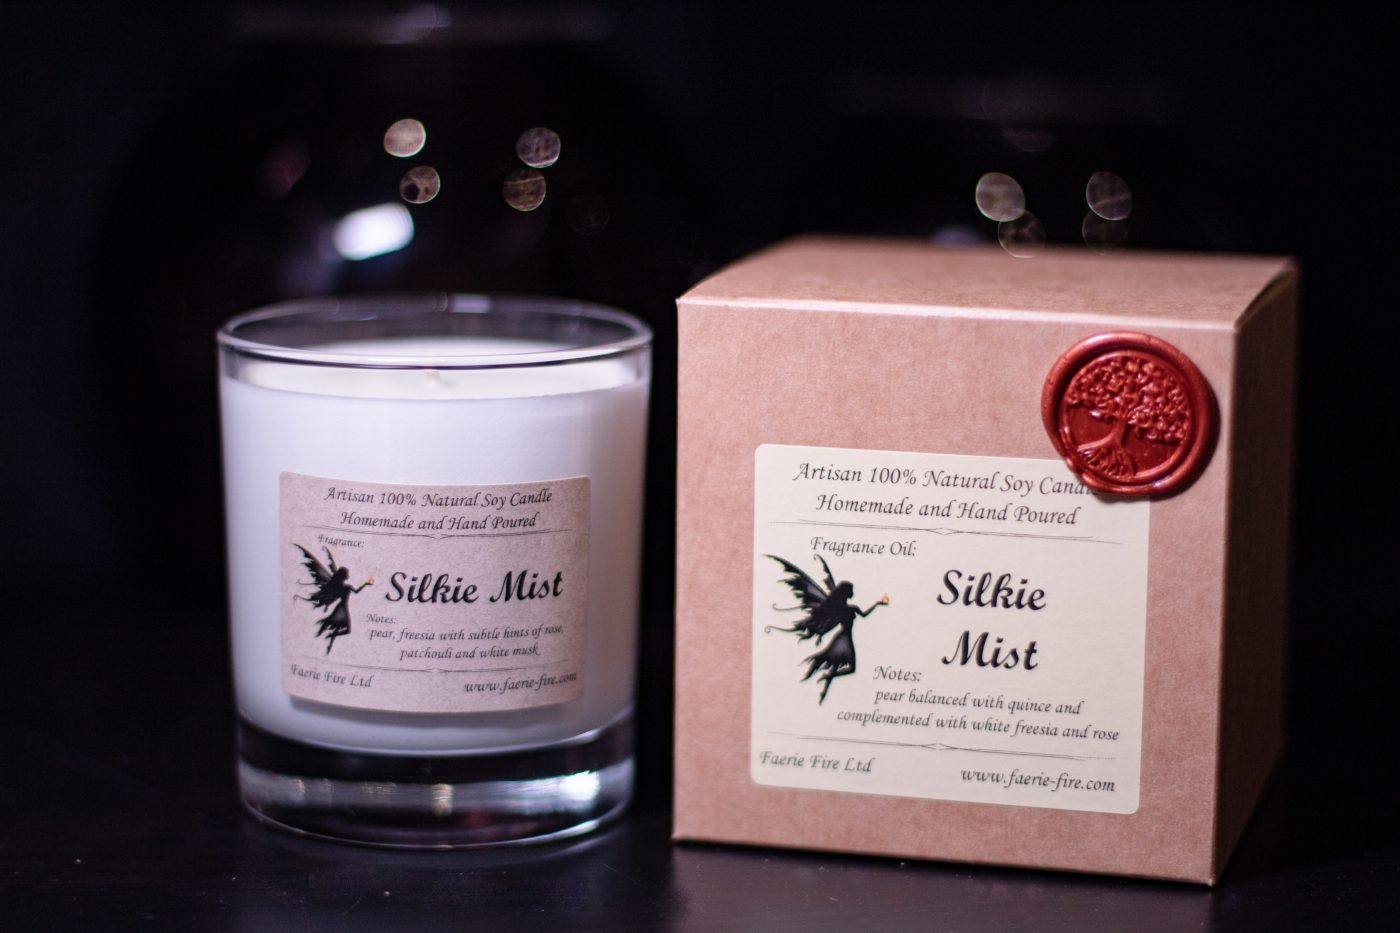 Pale green silkie mist soy candle in a clear glass jar smelling like pear and freesia, beside a gift box against a dark background